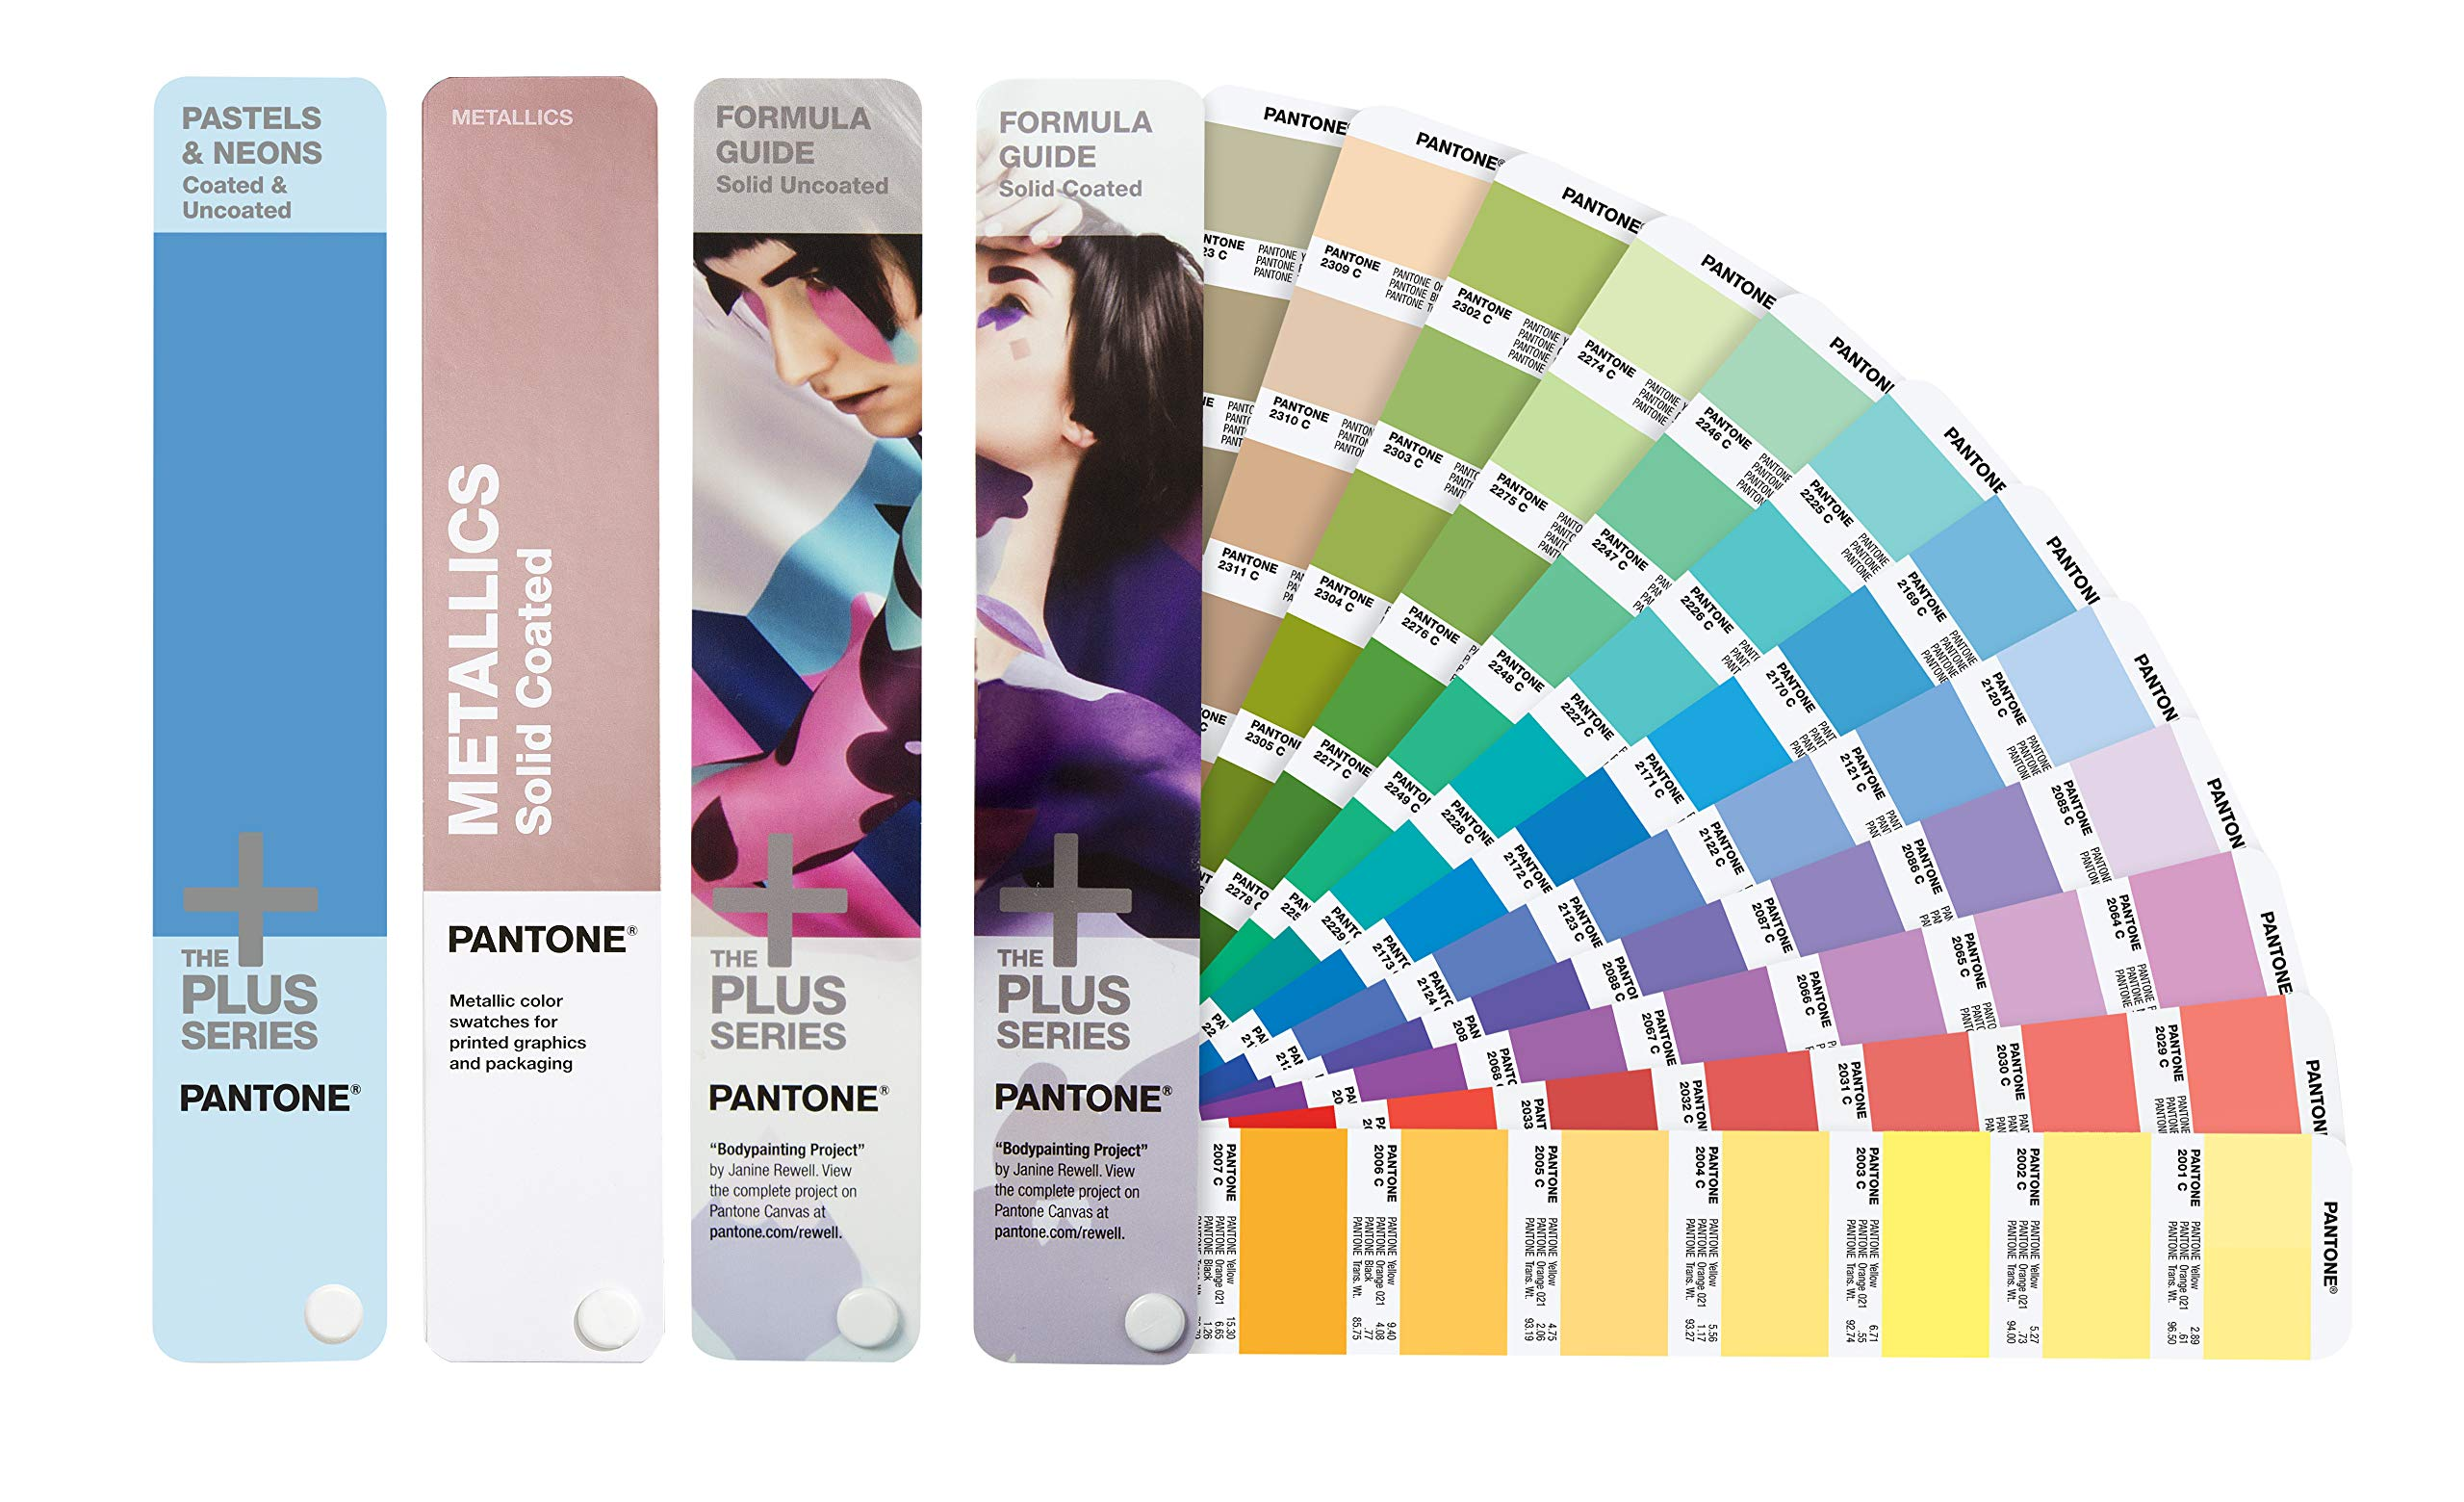 PANTONE GP1605M Plus Series Solid Color Fan Guide Set 2019